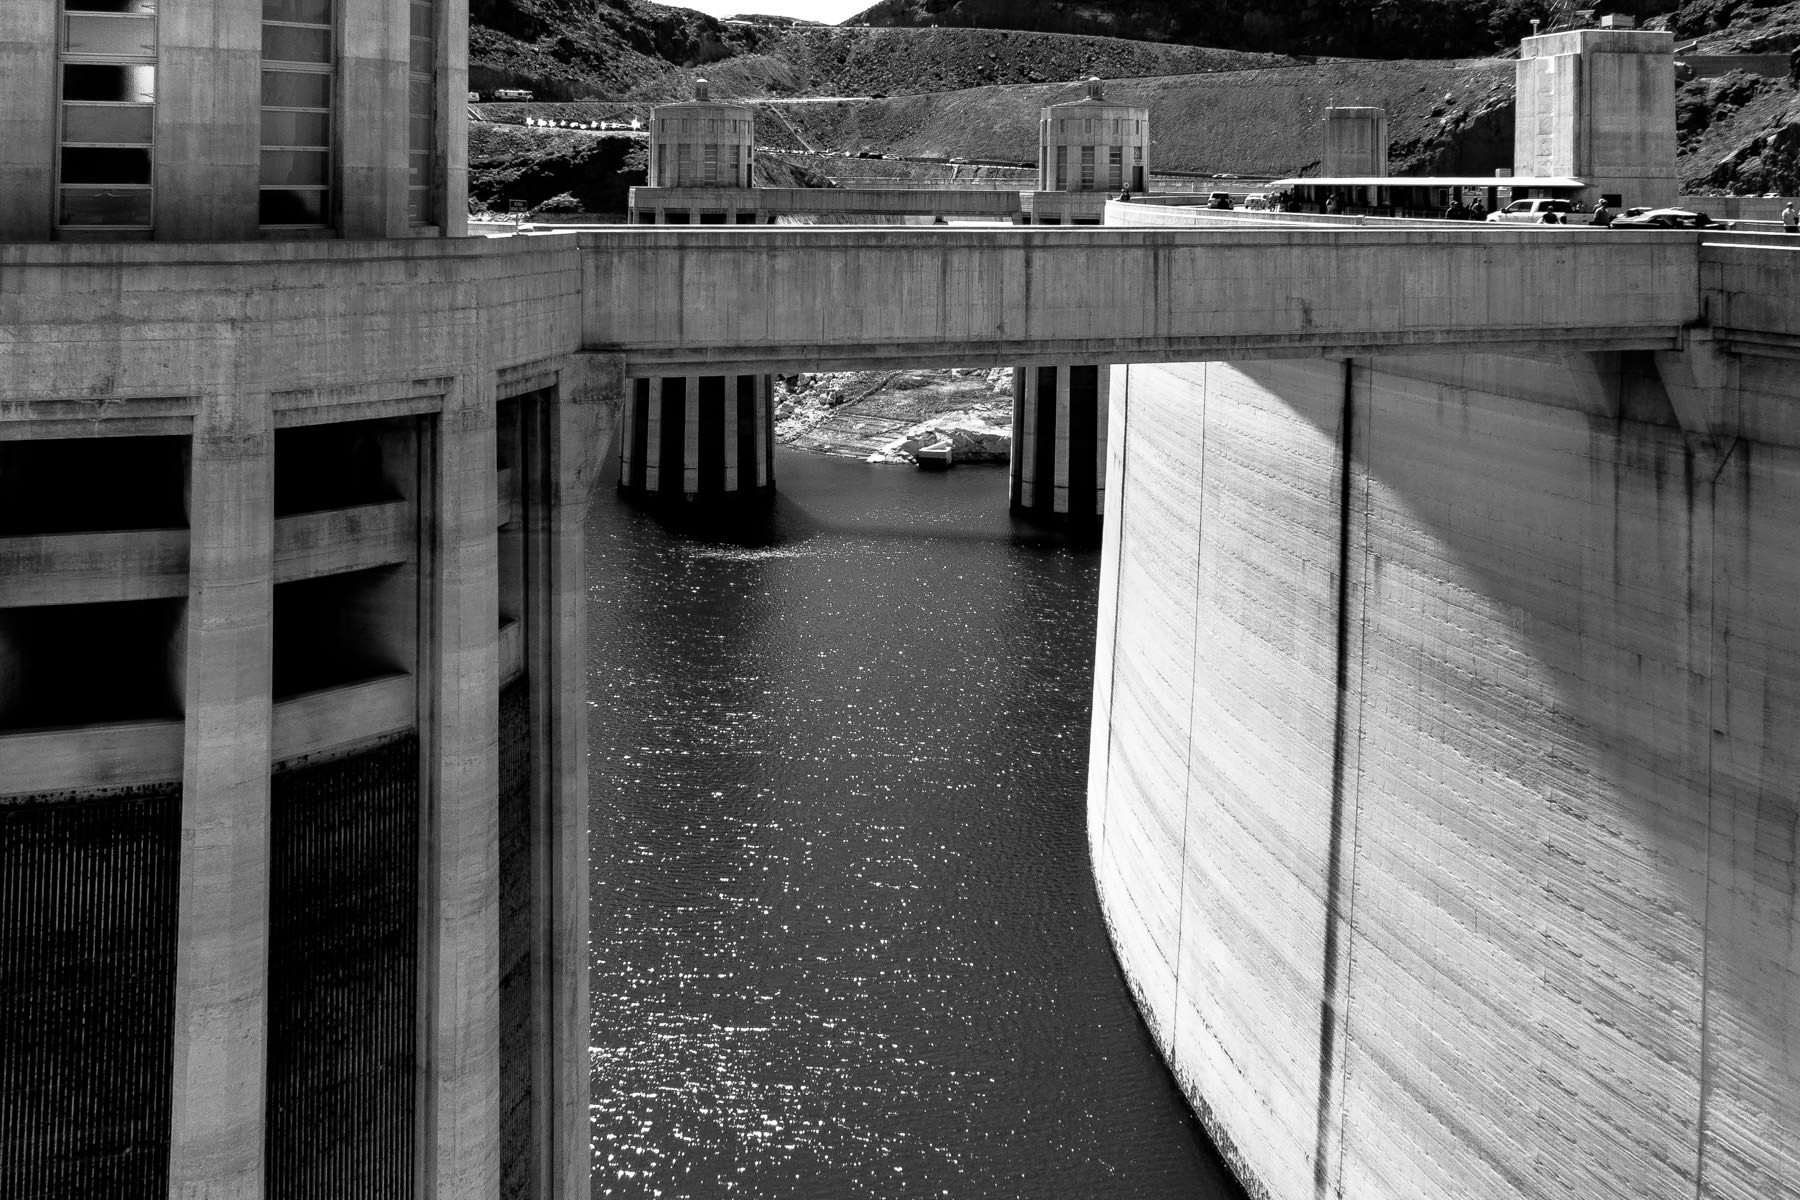 The Lake Mead side of Hoover Dam, showing the 395-foot-tall intake towers that supply the electricity-generating turbines inside the structure with water.